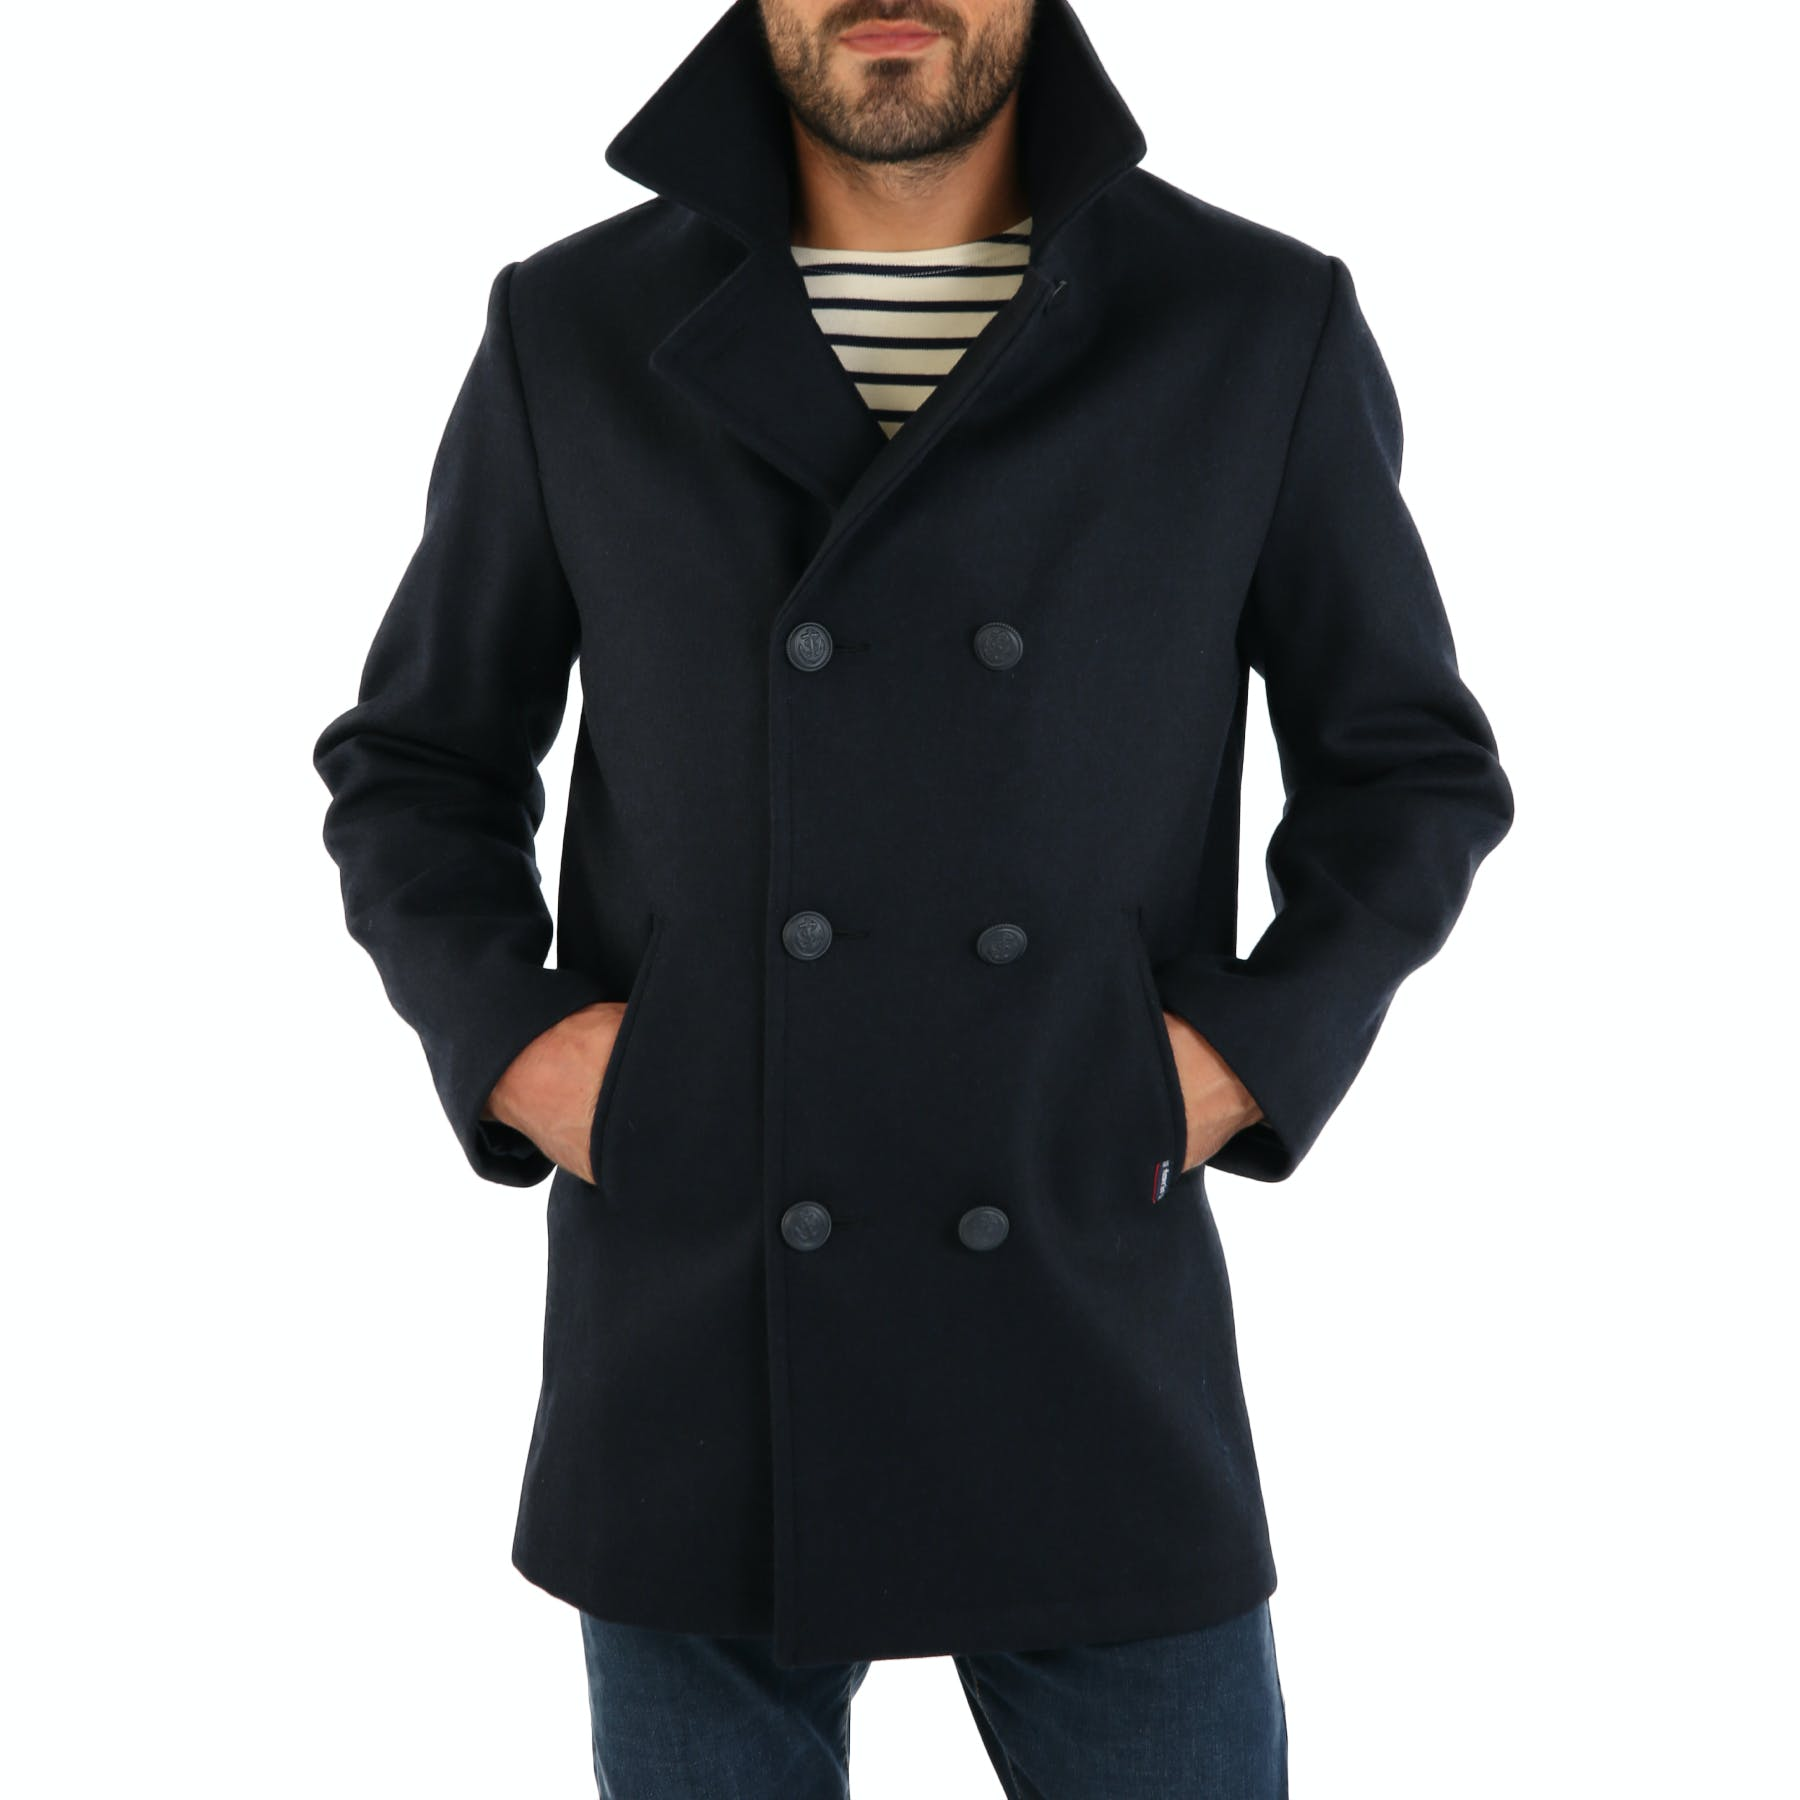 factory outlets high quality aliexpress Armor Lux Caban Homme Kermor Jacket - Navire | Country Attire US